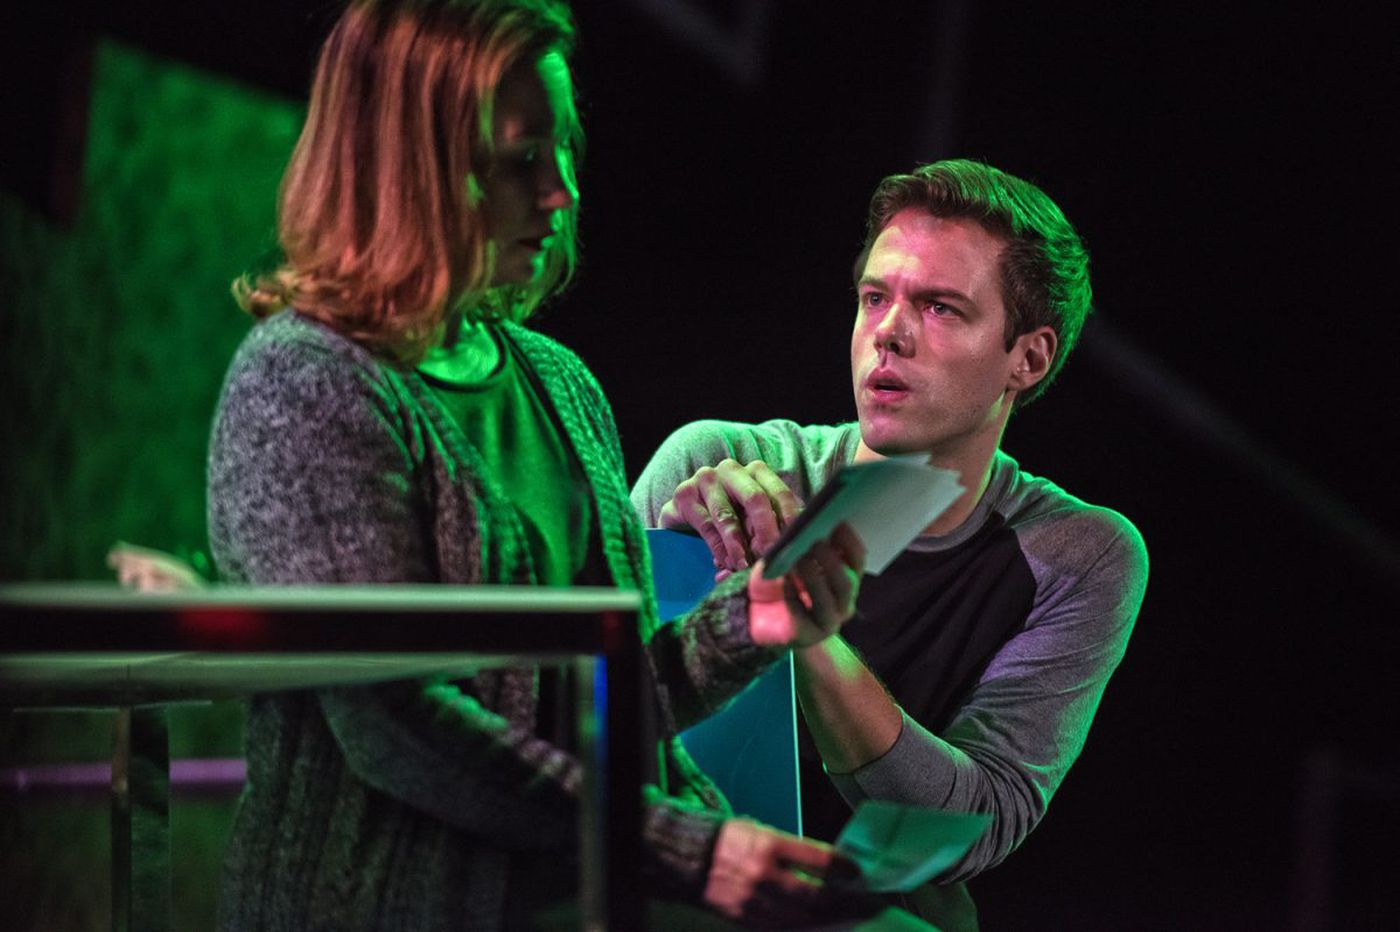 Uncommon sympathy distinguishes this version of 'Next to Normal'